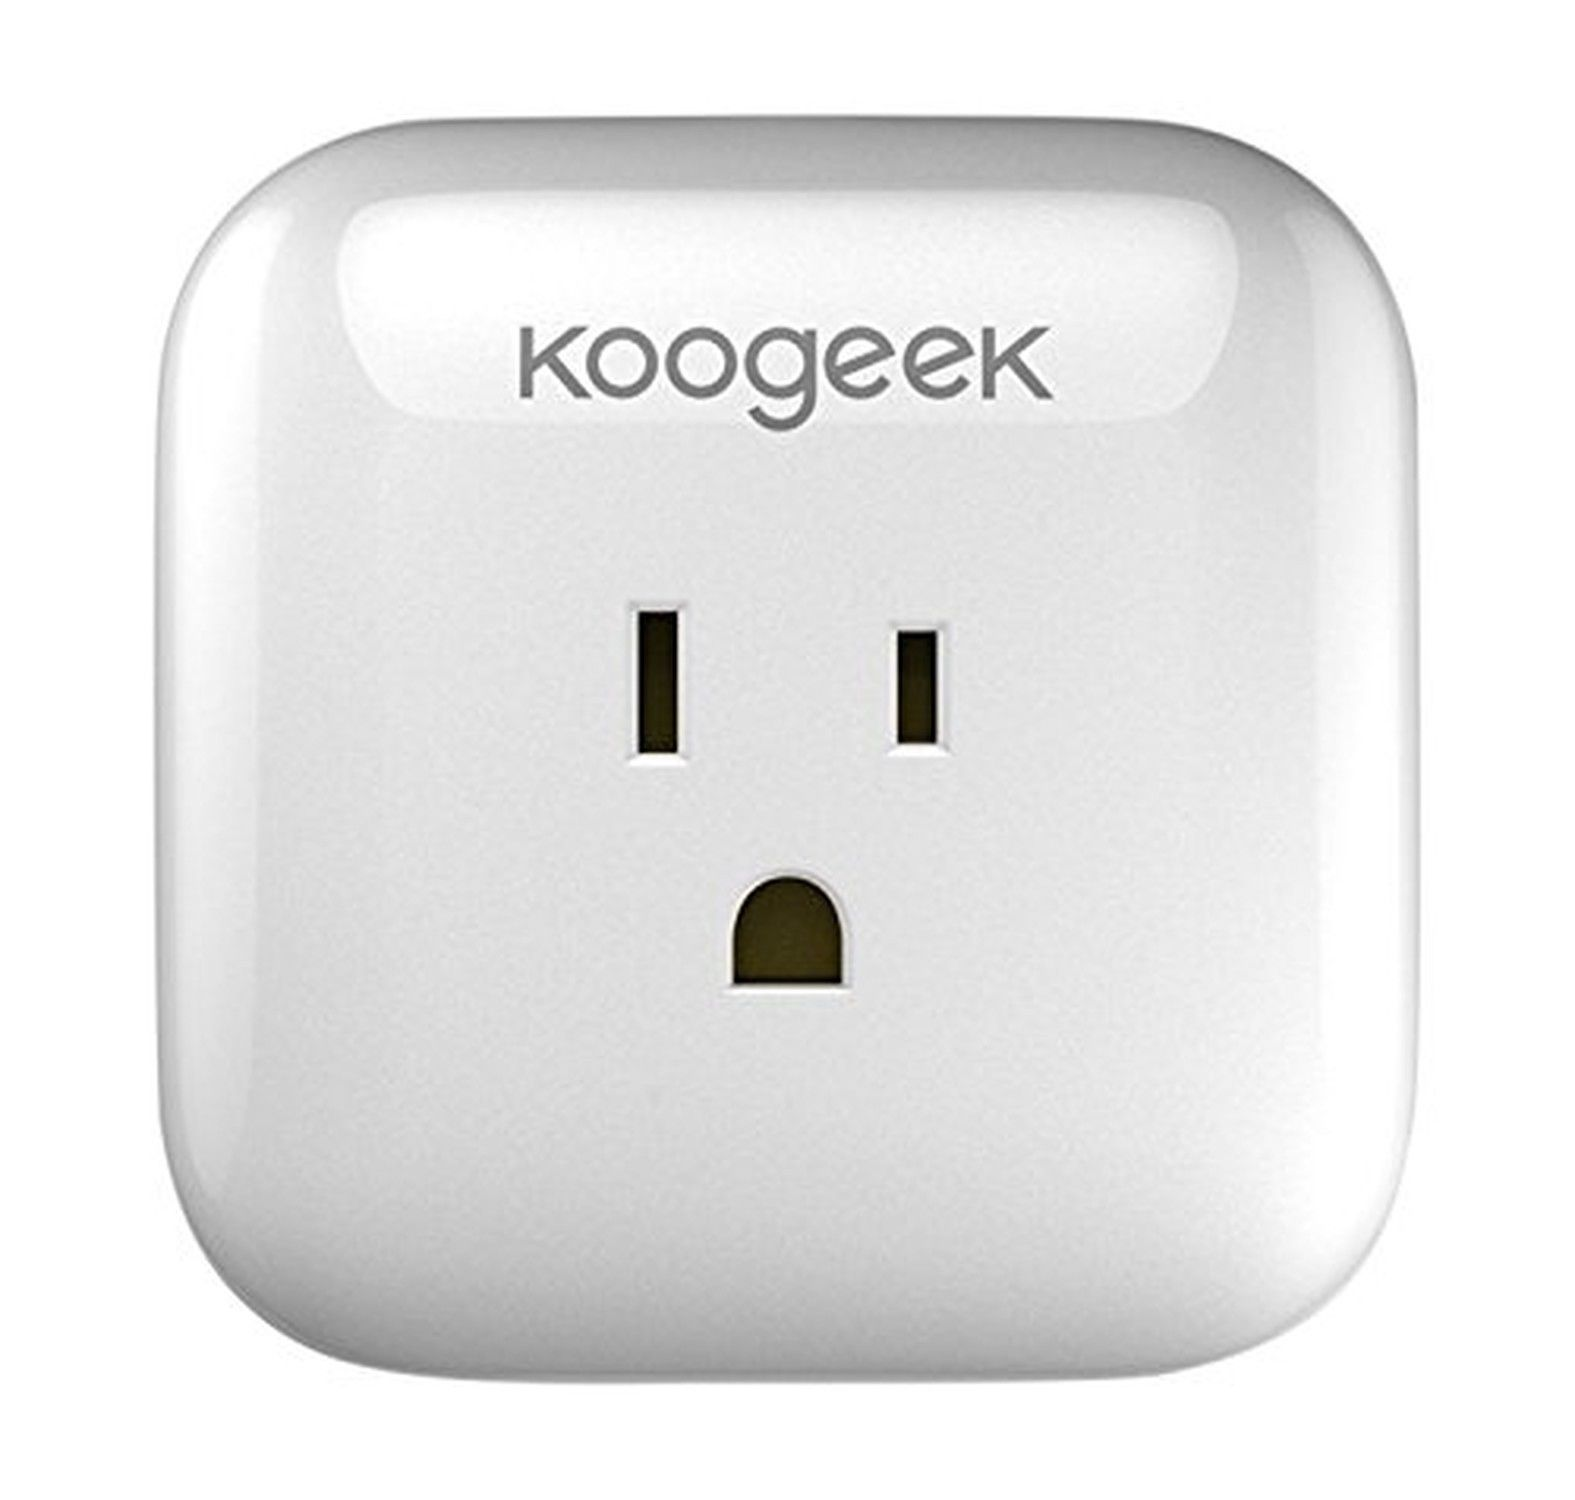 Koogeek Smart Plug WiFi for Apple HomeKit with Siri